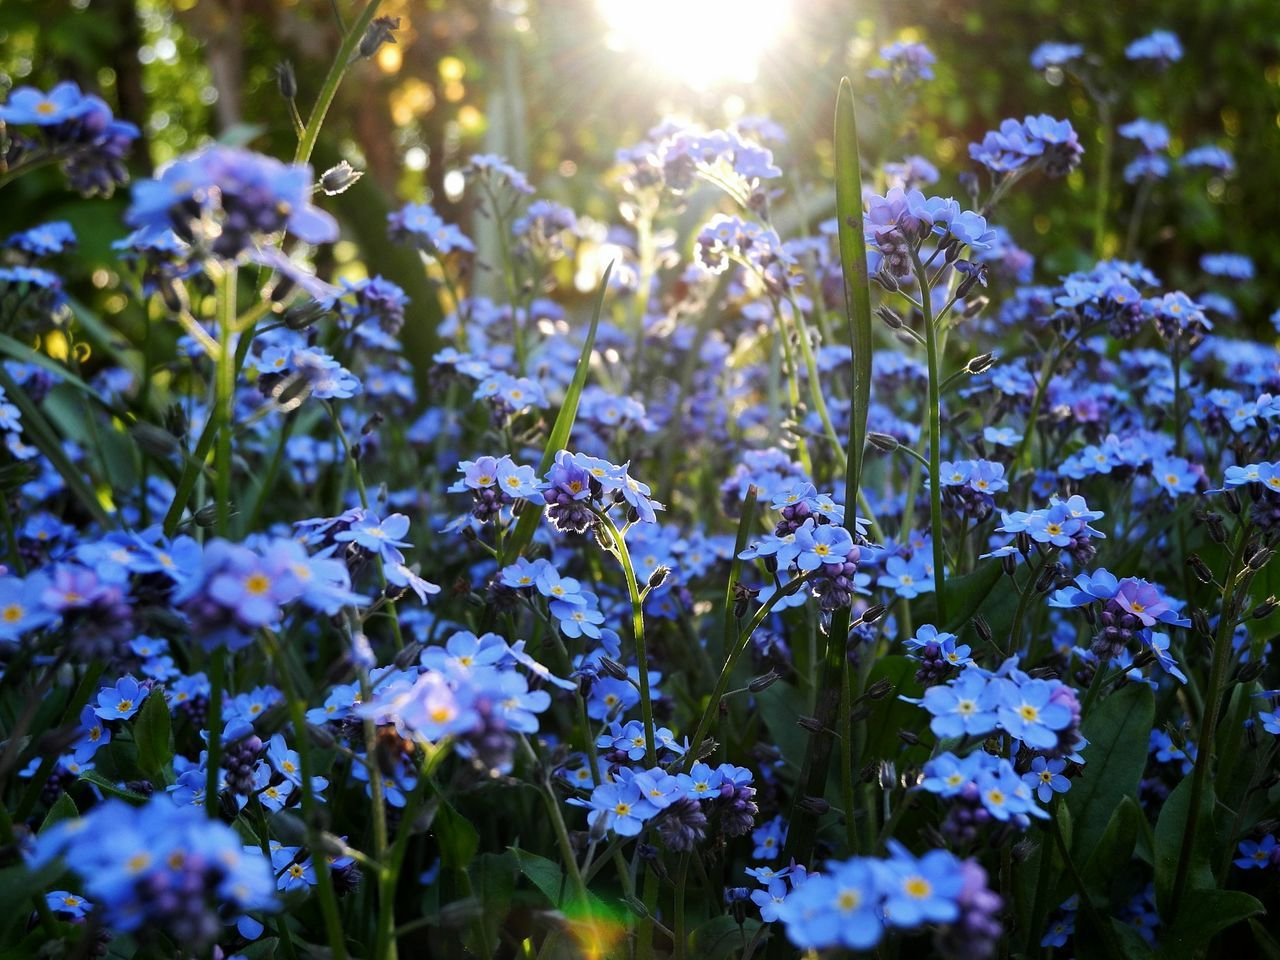 Beauty In Nature Close-up Day Field Flower Flower Head Fragility Freshness Growth Nature No People Outdoors Plant Sun Sunbeam Sunlight Spring Sunlight Through Flowers Blooming Myosotis Forget-me-not Vergissmeinnicht Forget Me Not Blue Blue Flowers